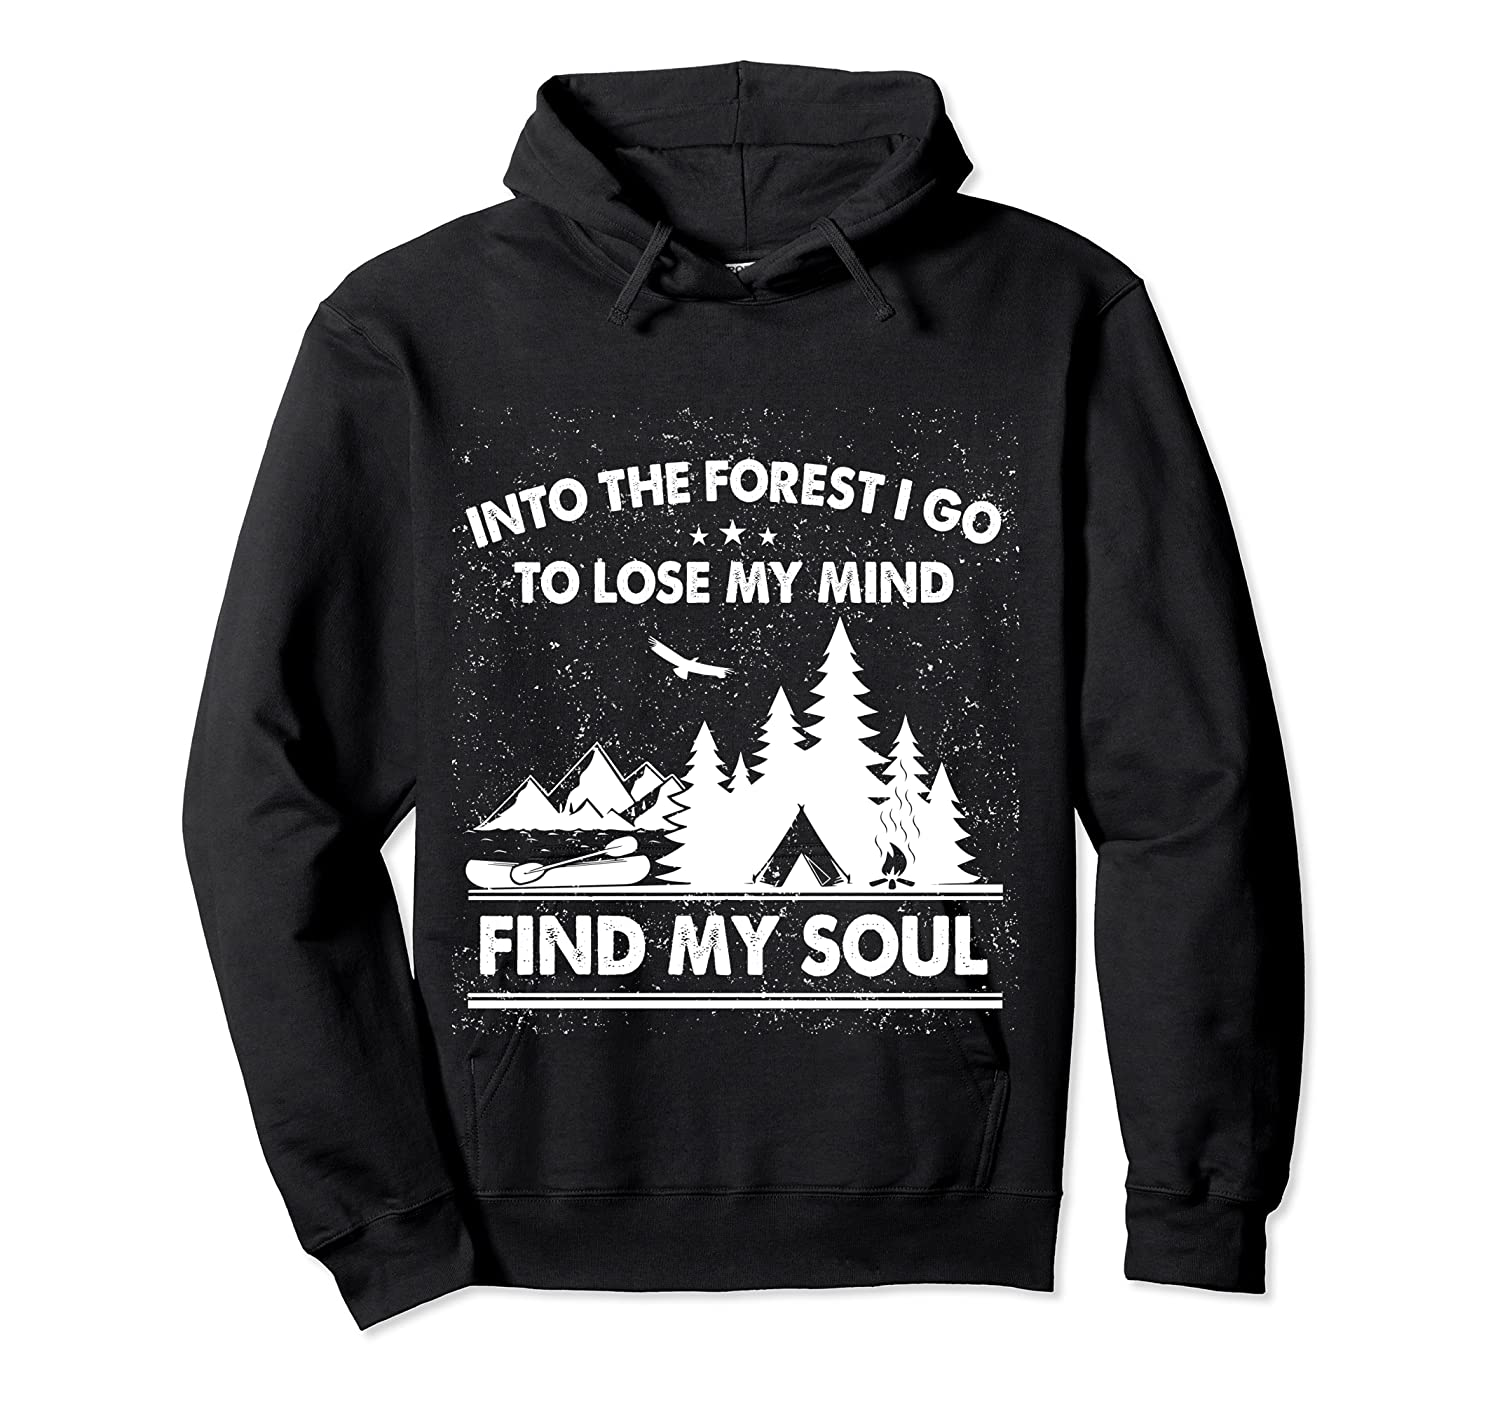 Into The Forest I Go To Lose My Mind And Find My Soul Ts Shirts Unisex Pullover Hoodie